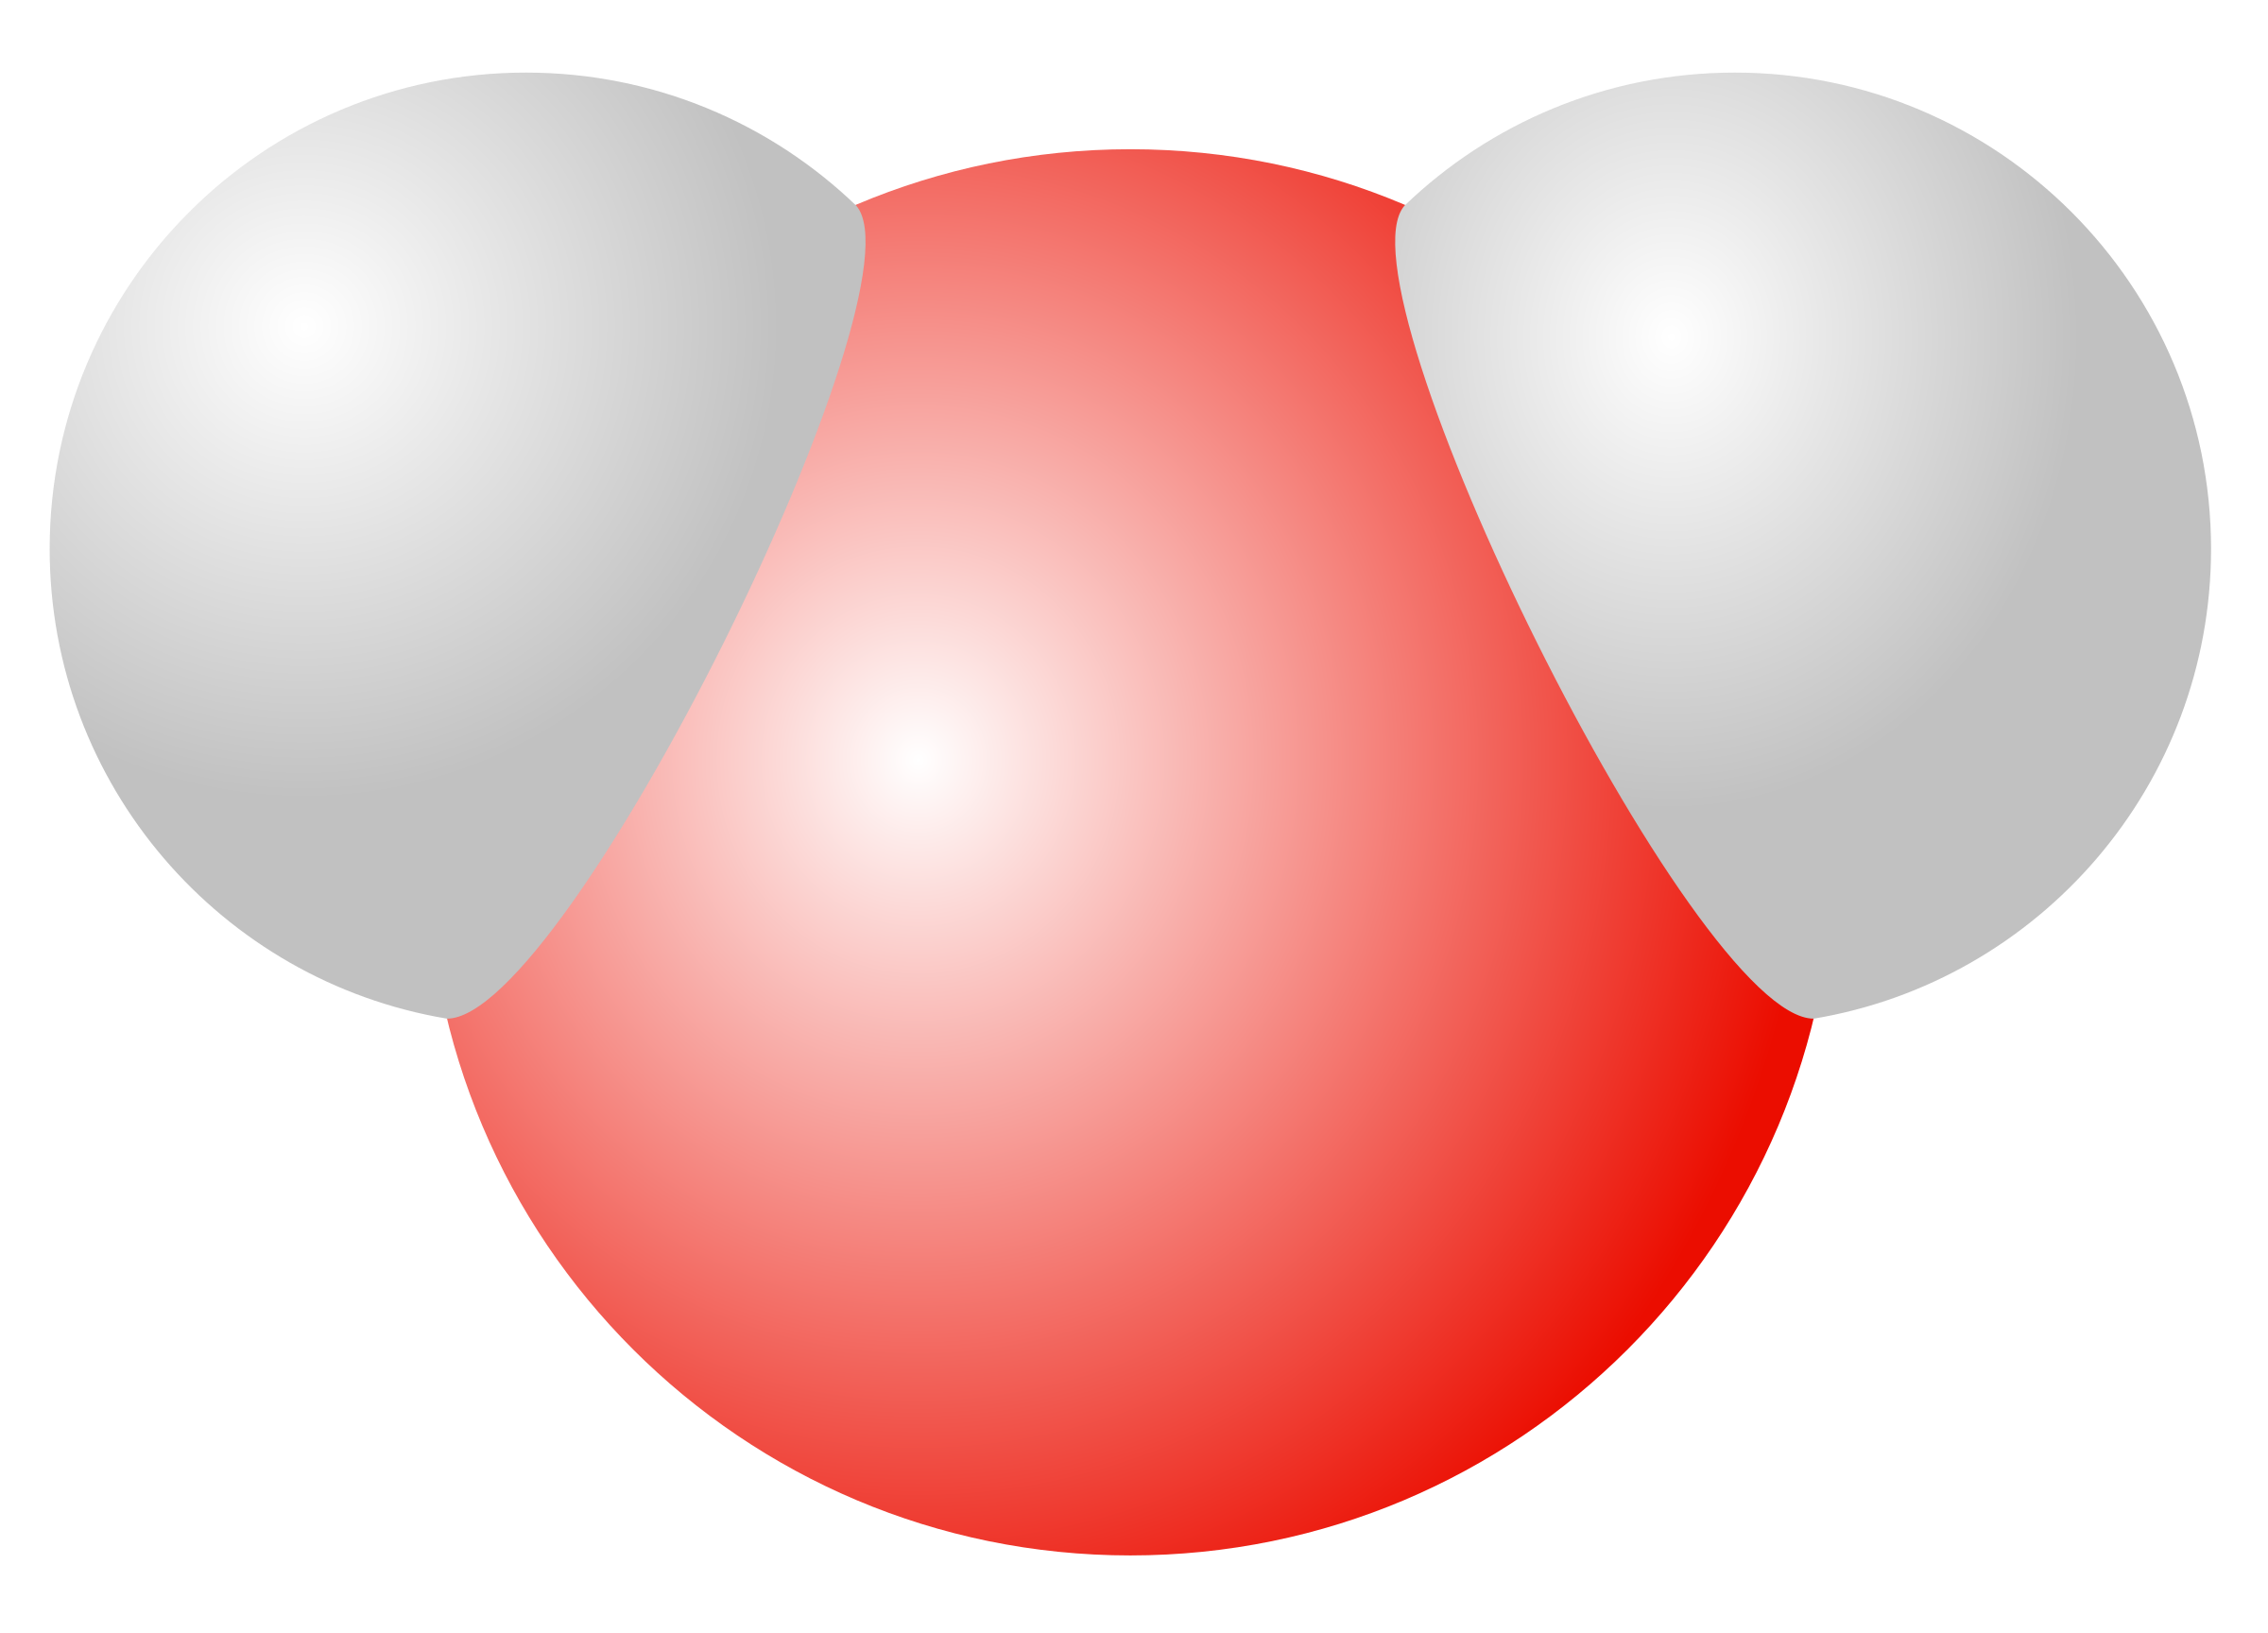 Molecule big image png. Water clipart h2o